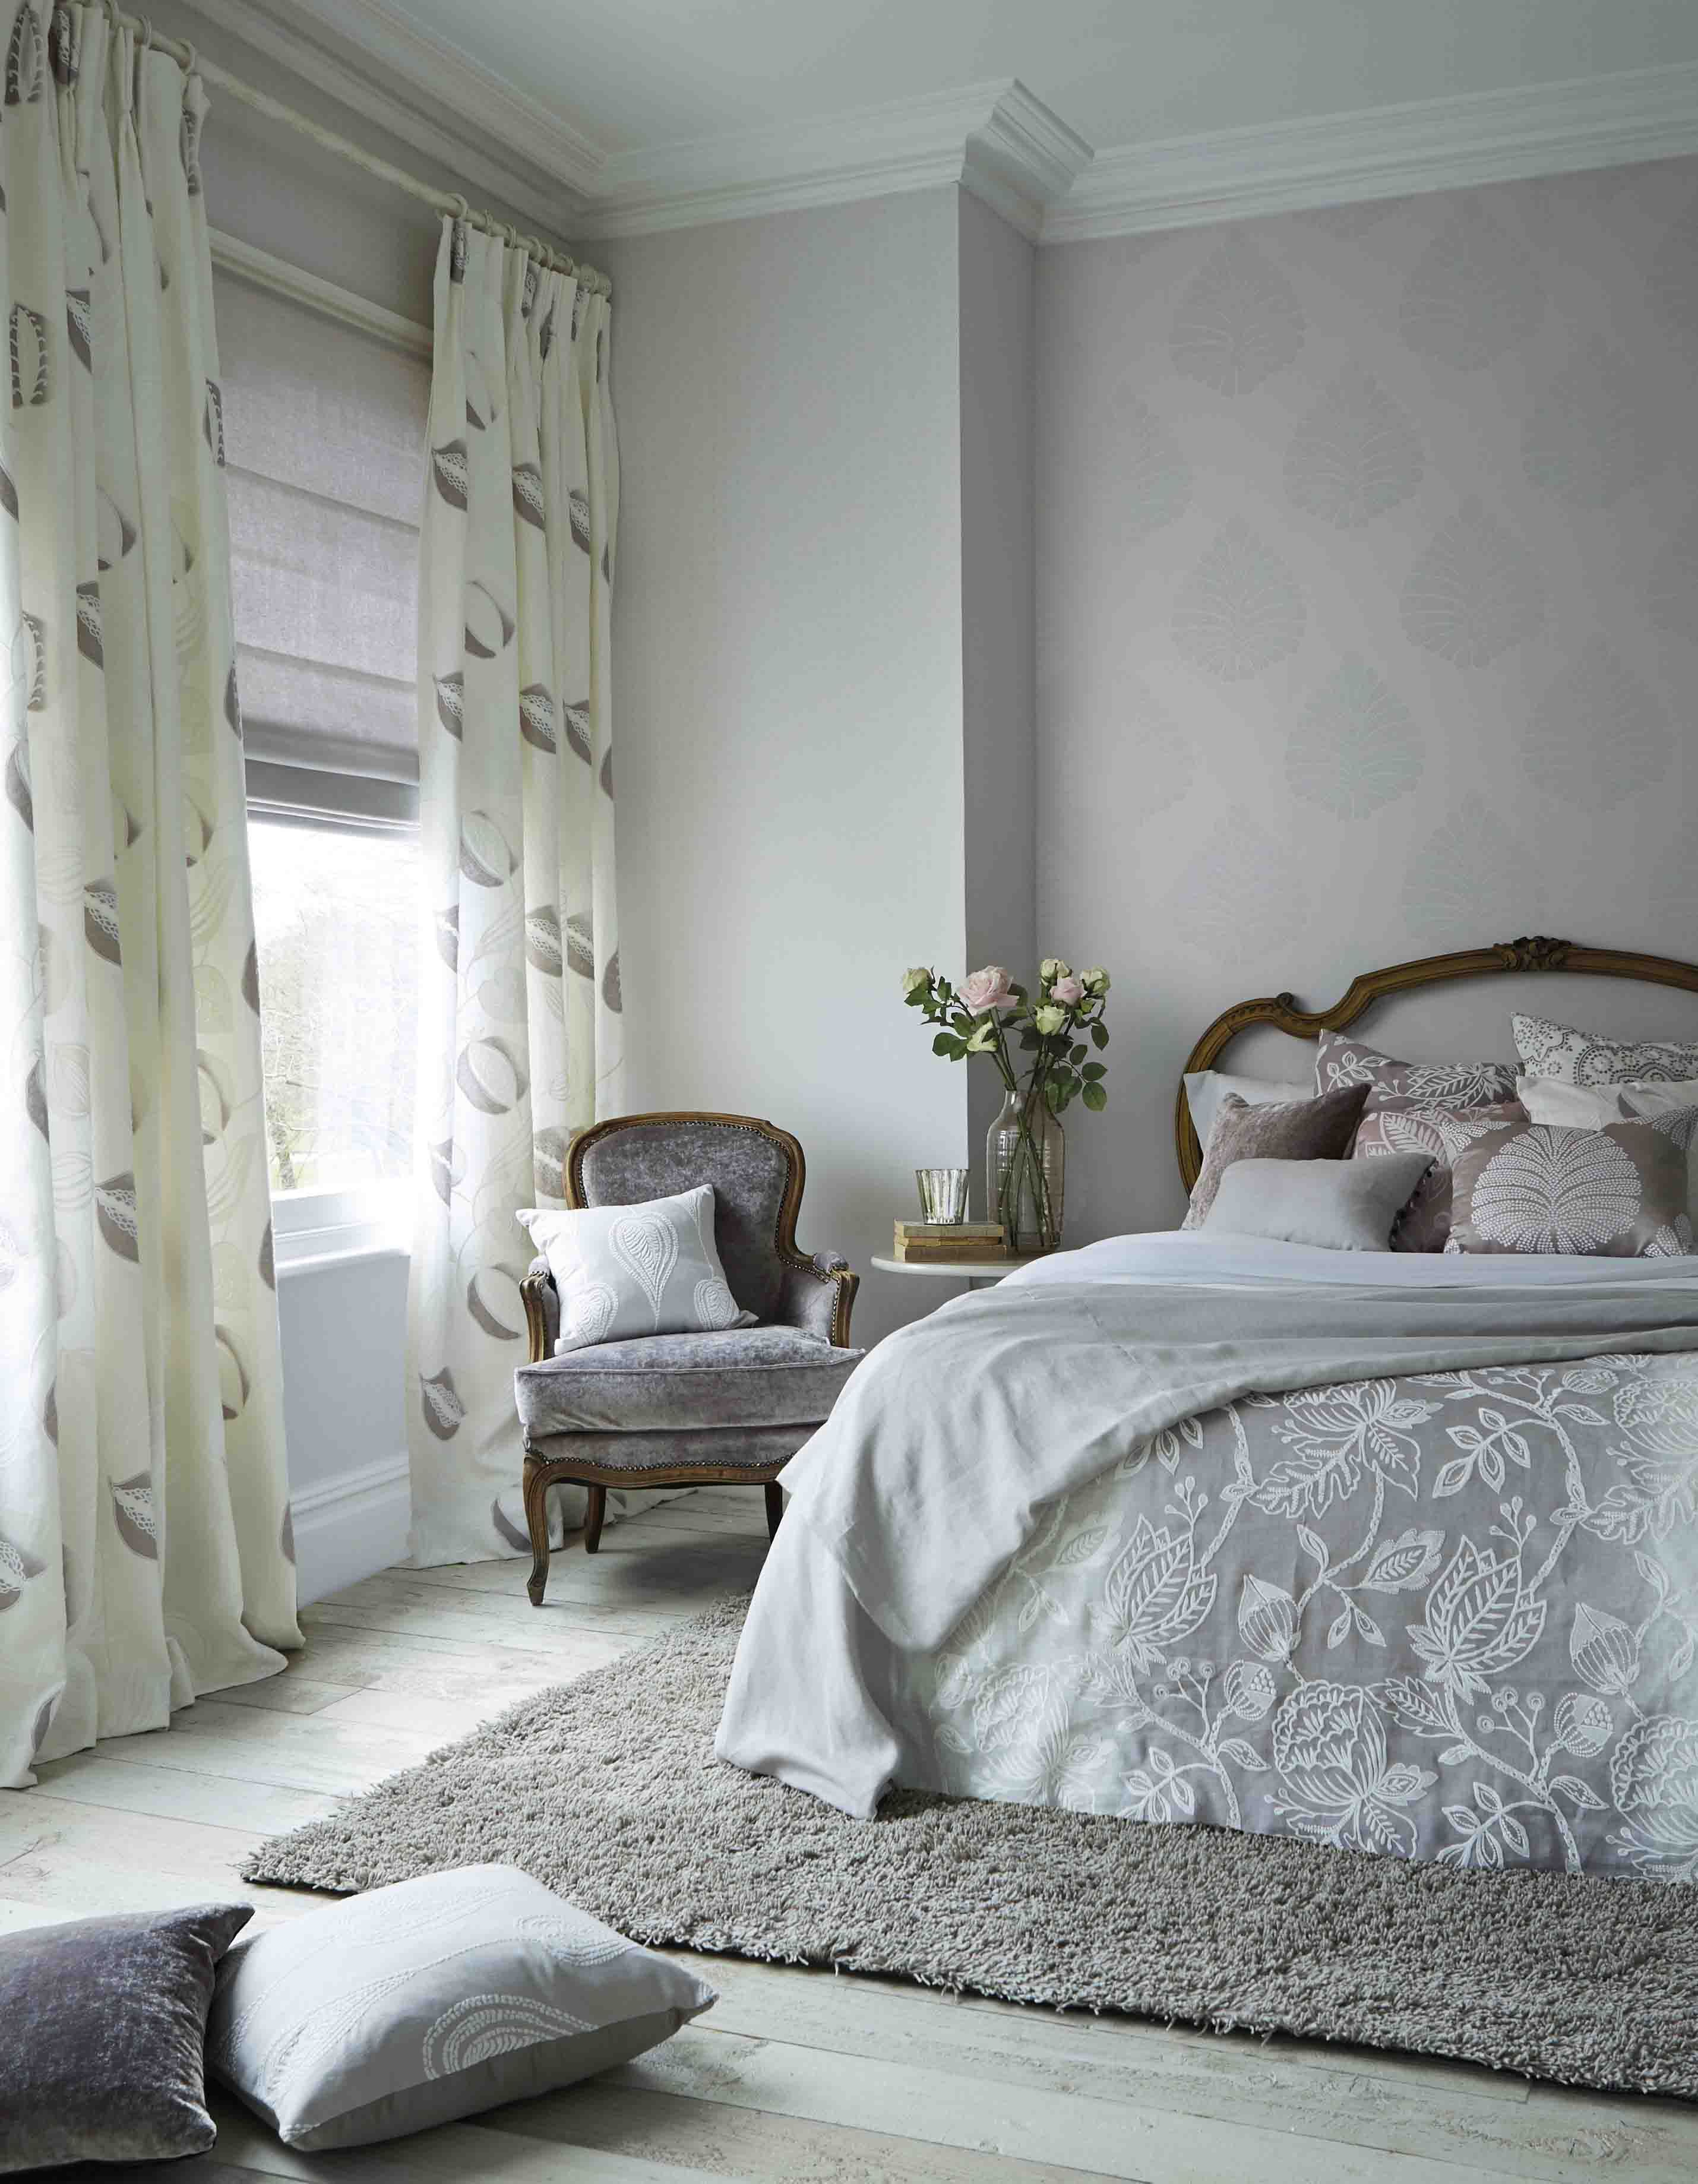 The Chalky Violet Palette In Harlequins New Collection Purity, Gives